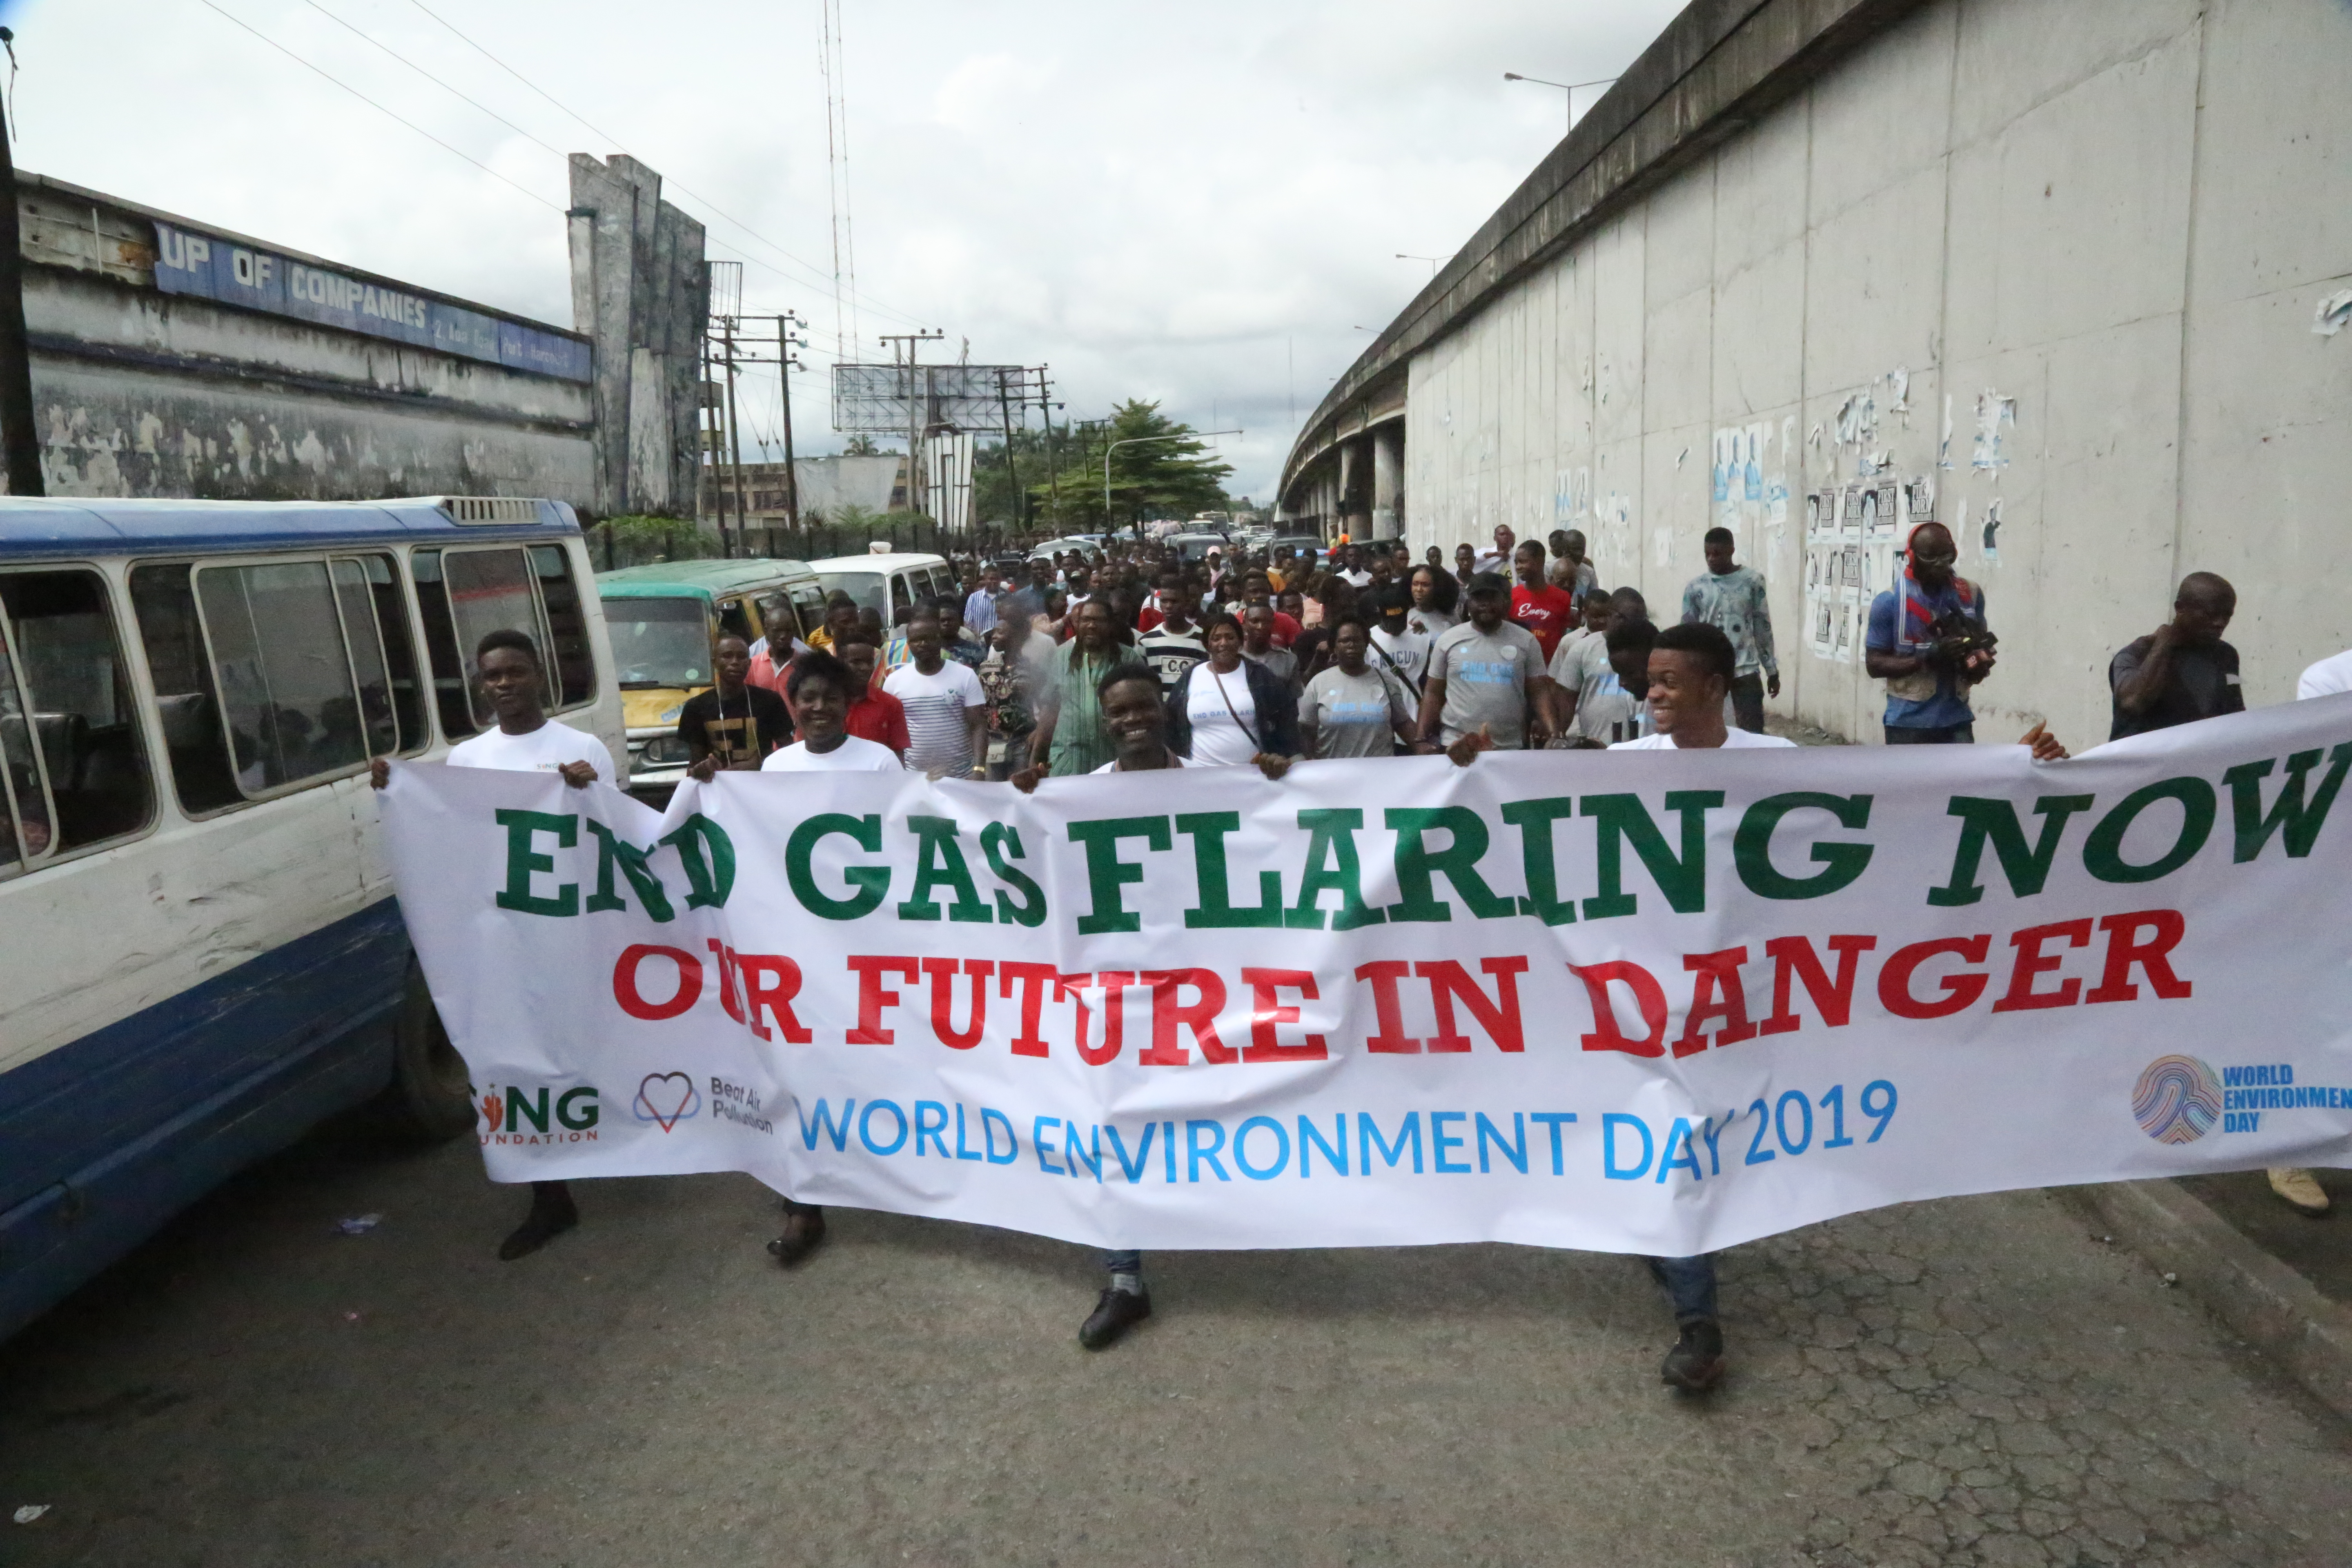 end gas flaring